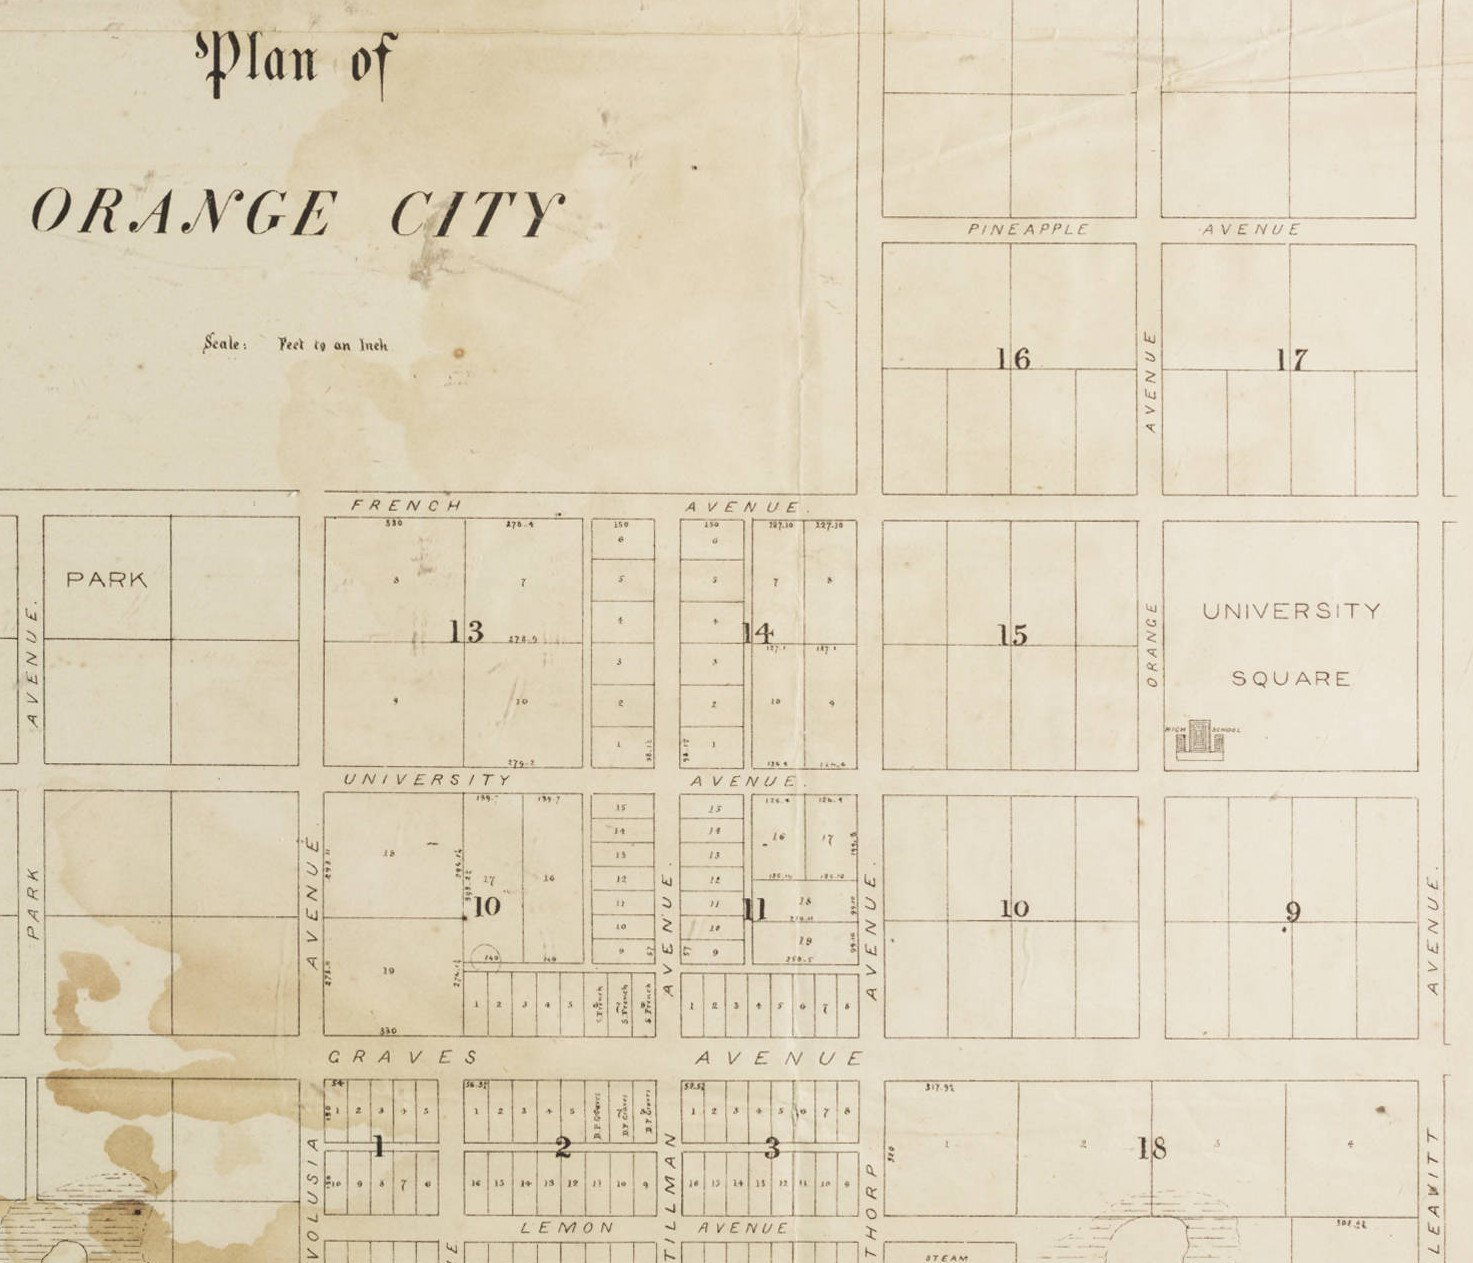 Map and Plan of Orange City, Volusia County, Florida. By Edward R. Trafford, 1877.